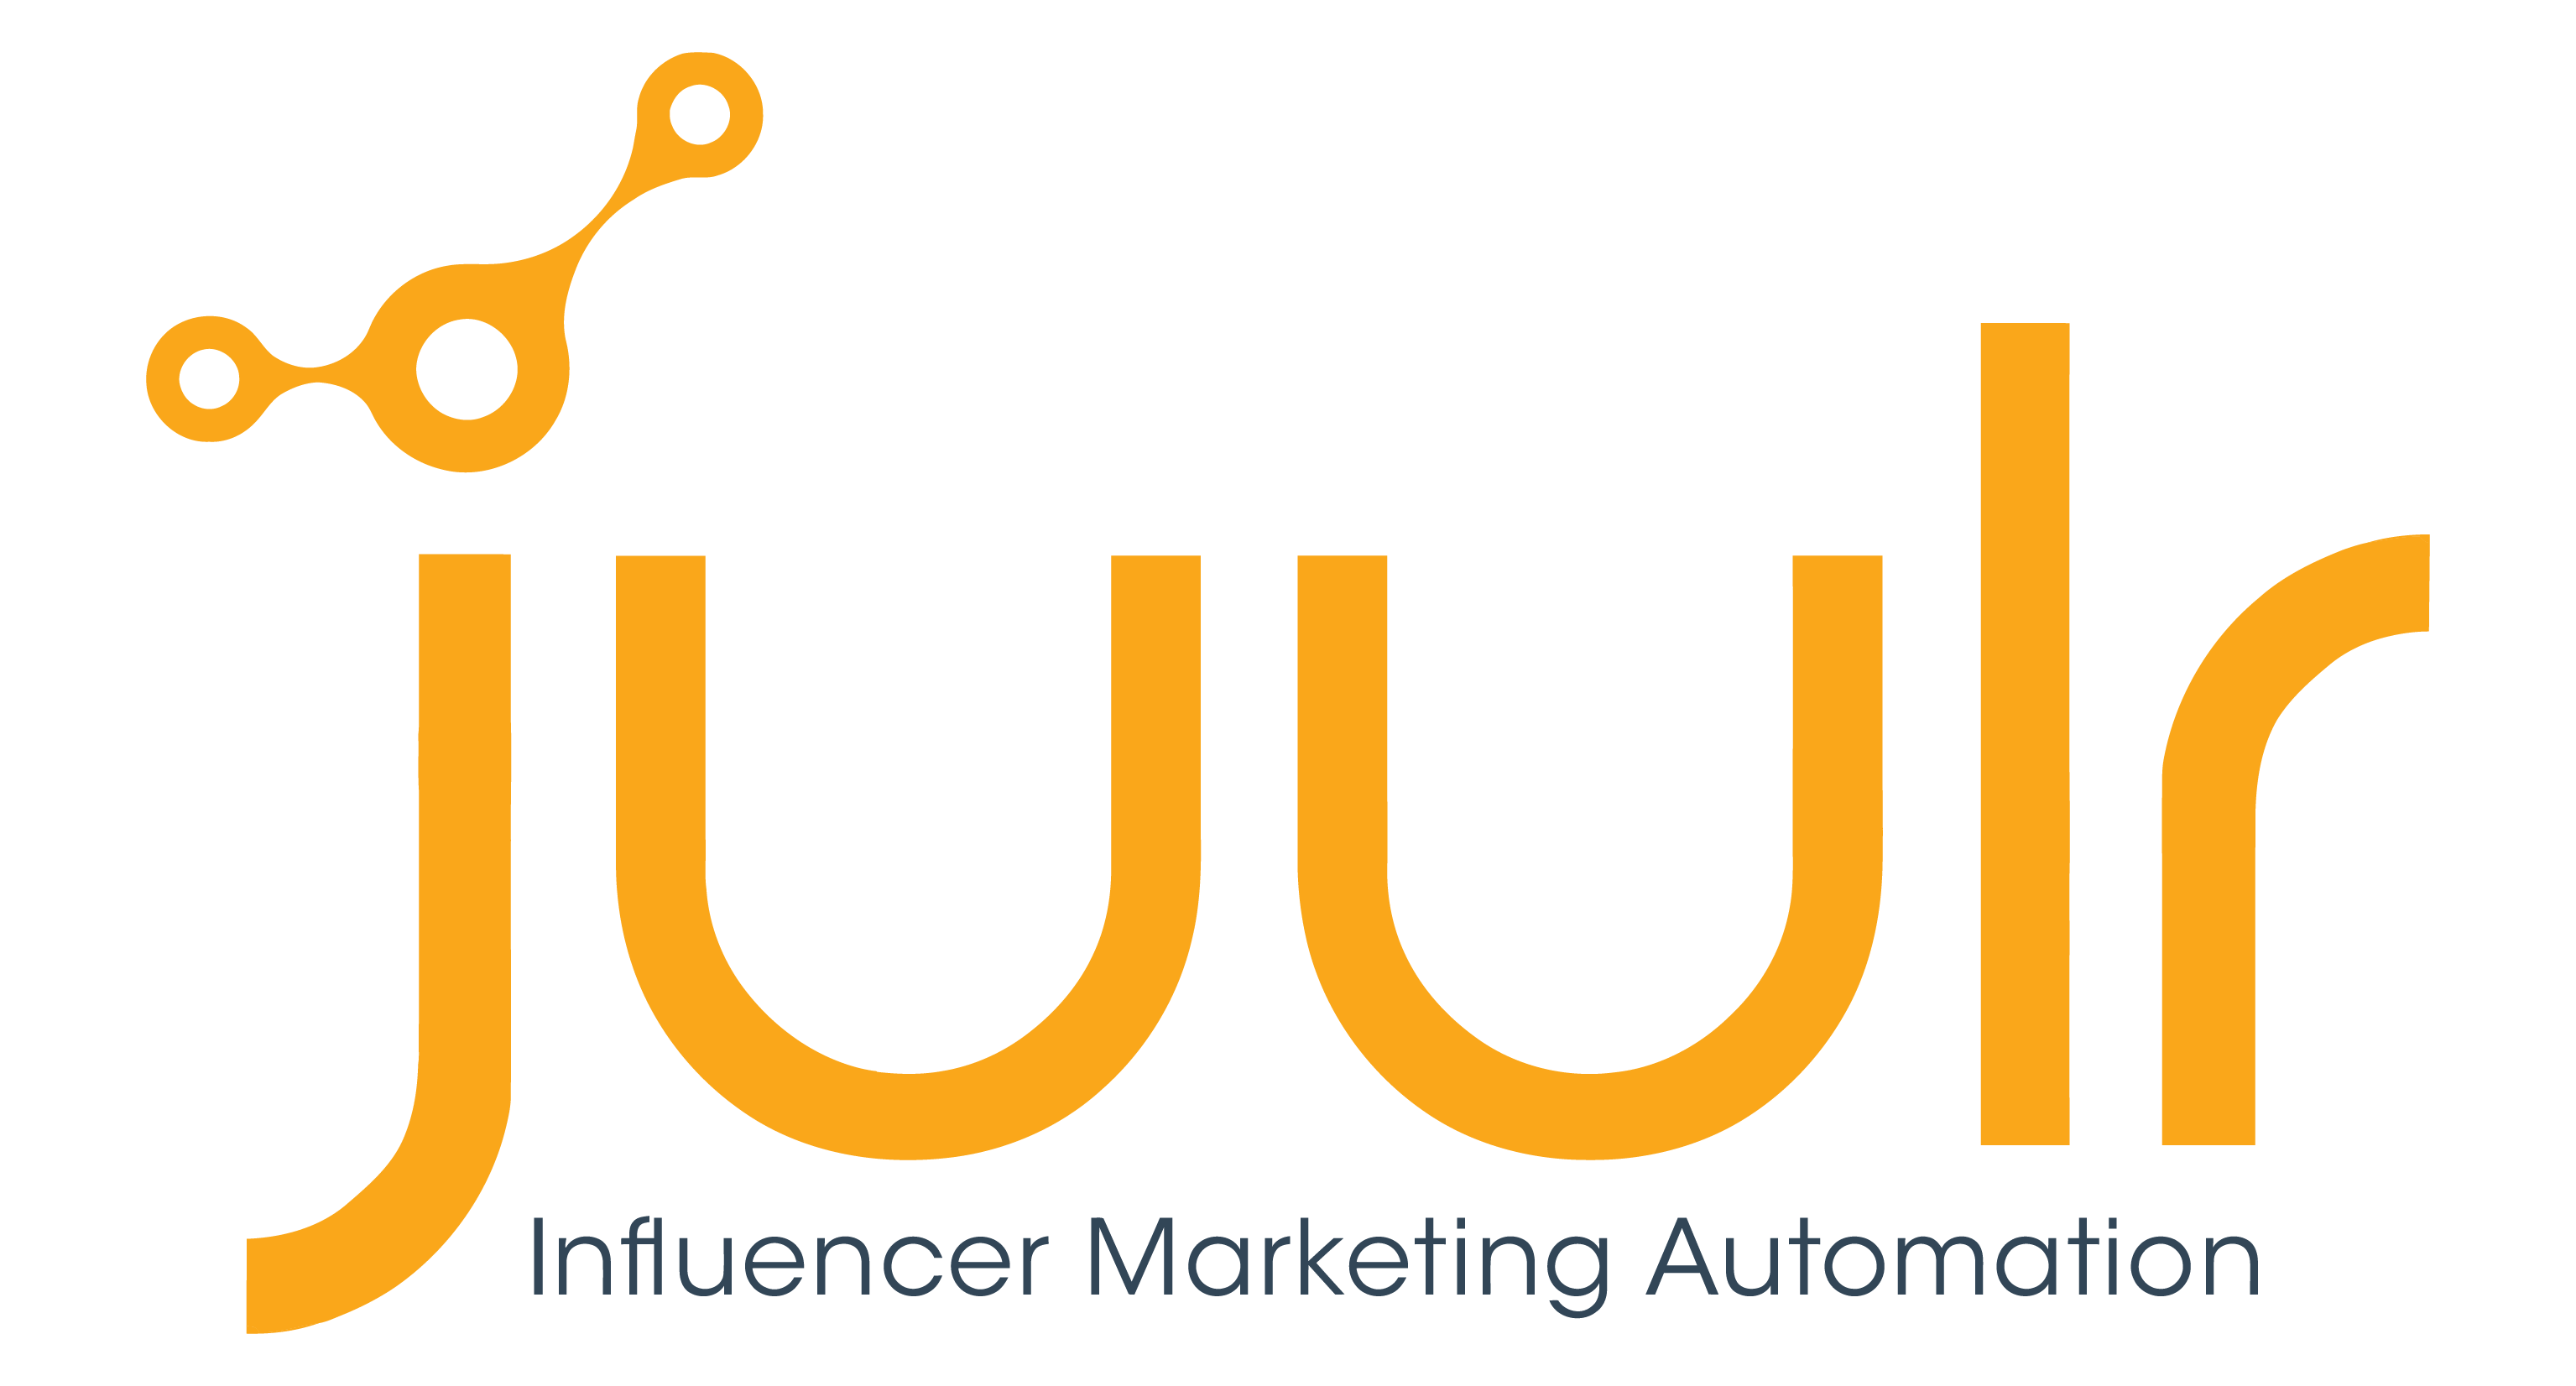 Juulr - Influencer Marketing